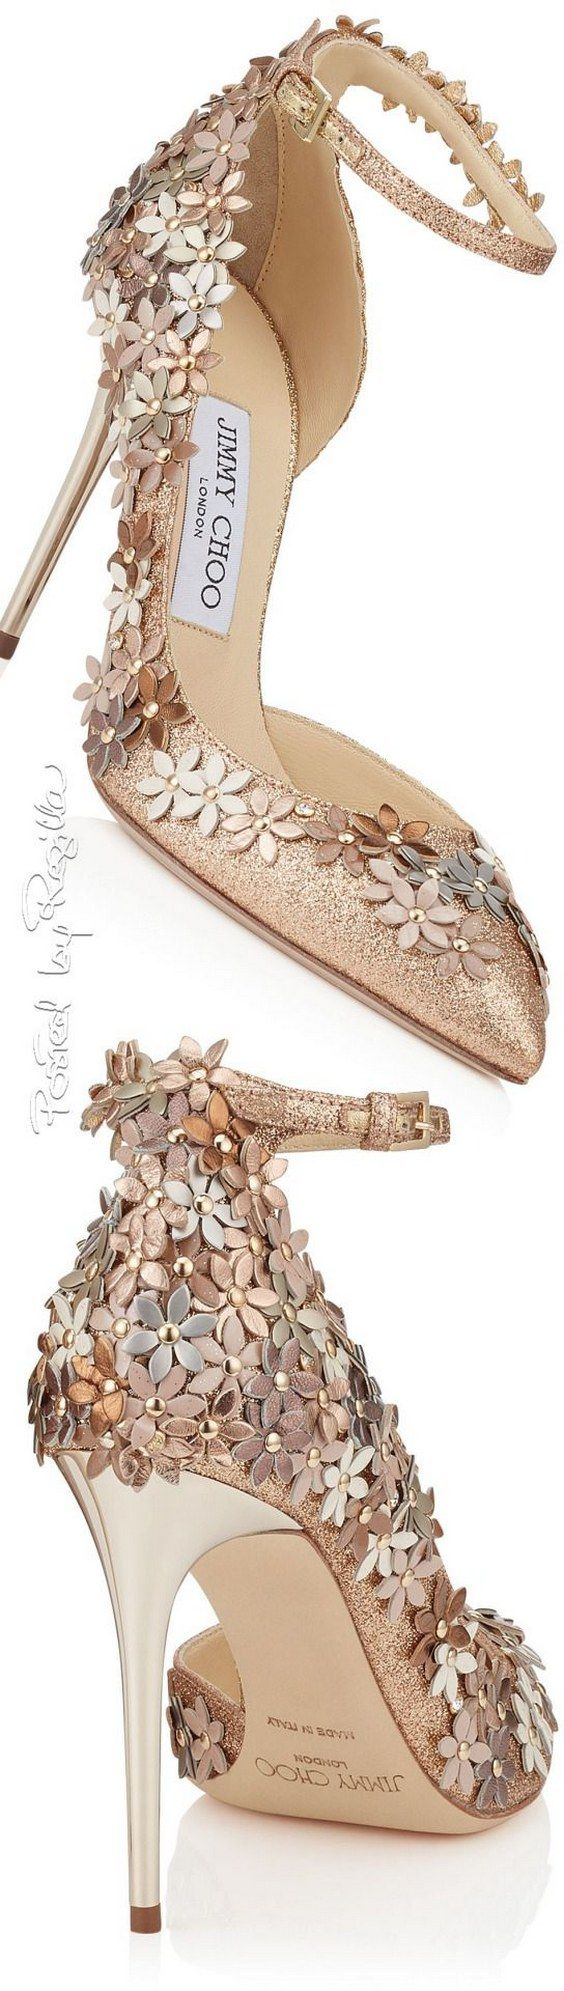 Jimmy Choo glitter wedding shoes